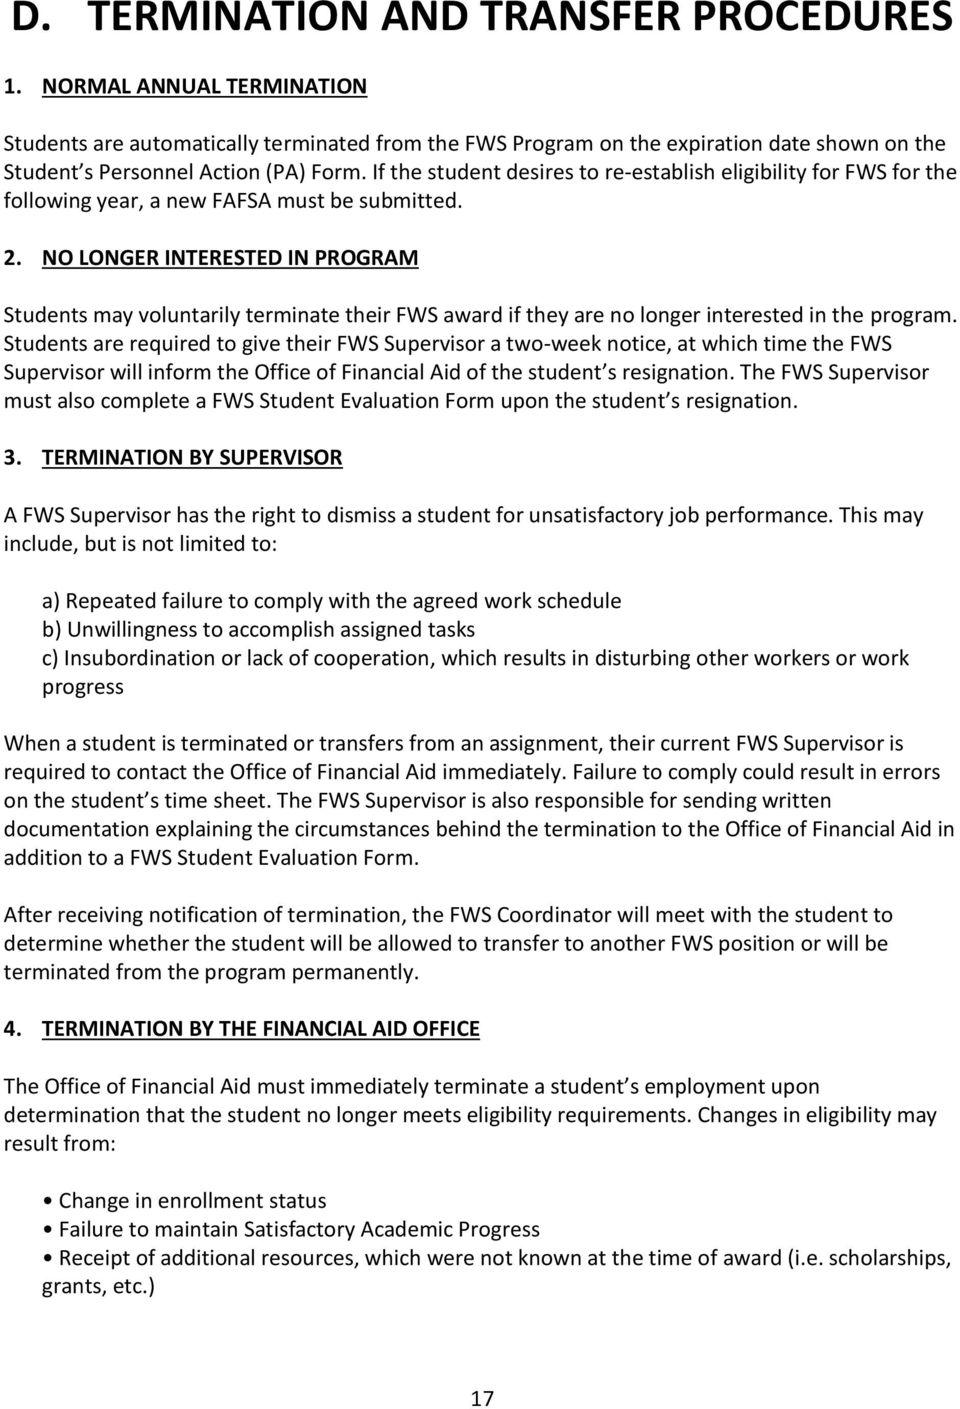 NO LONGER INTERESTED IN PROGRAM Students may voluntarily terminate their FWS award if they are no longer interested in the program.